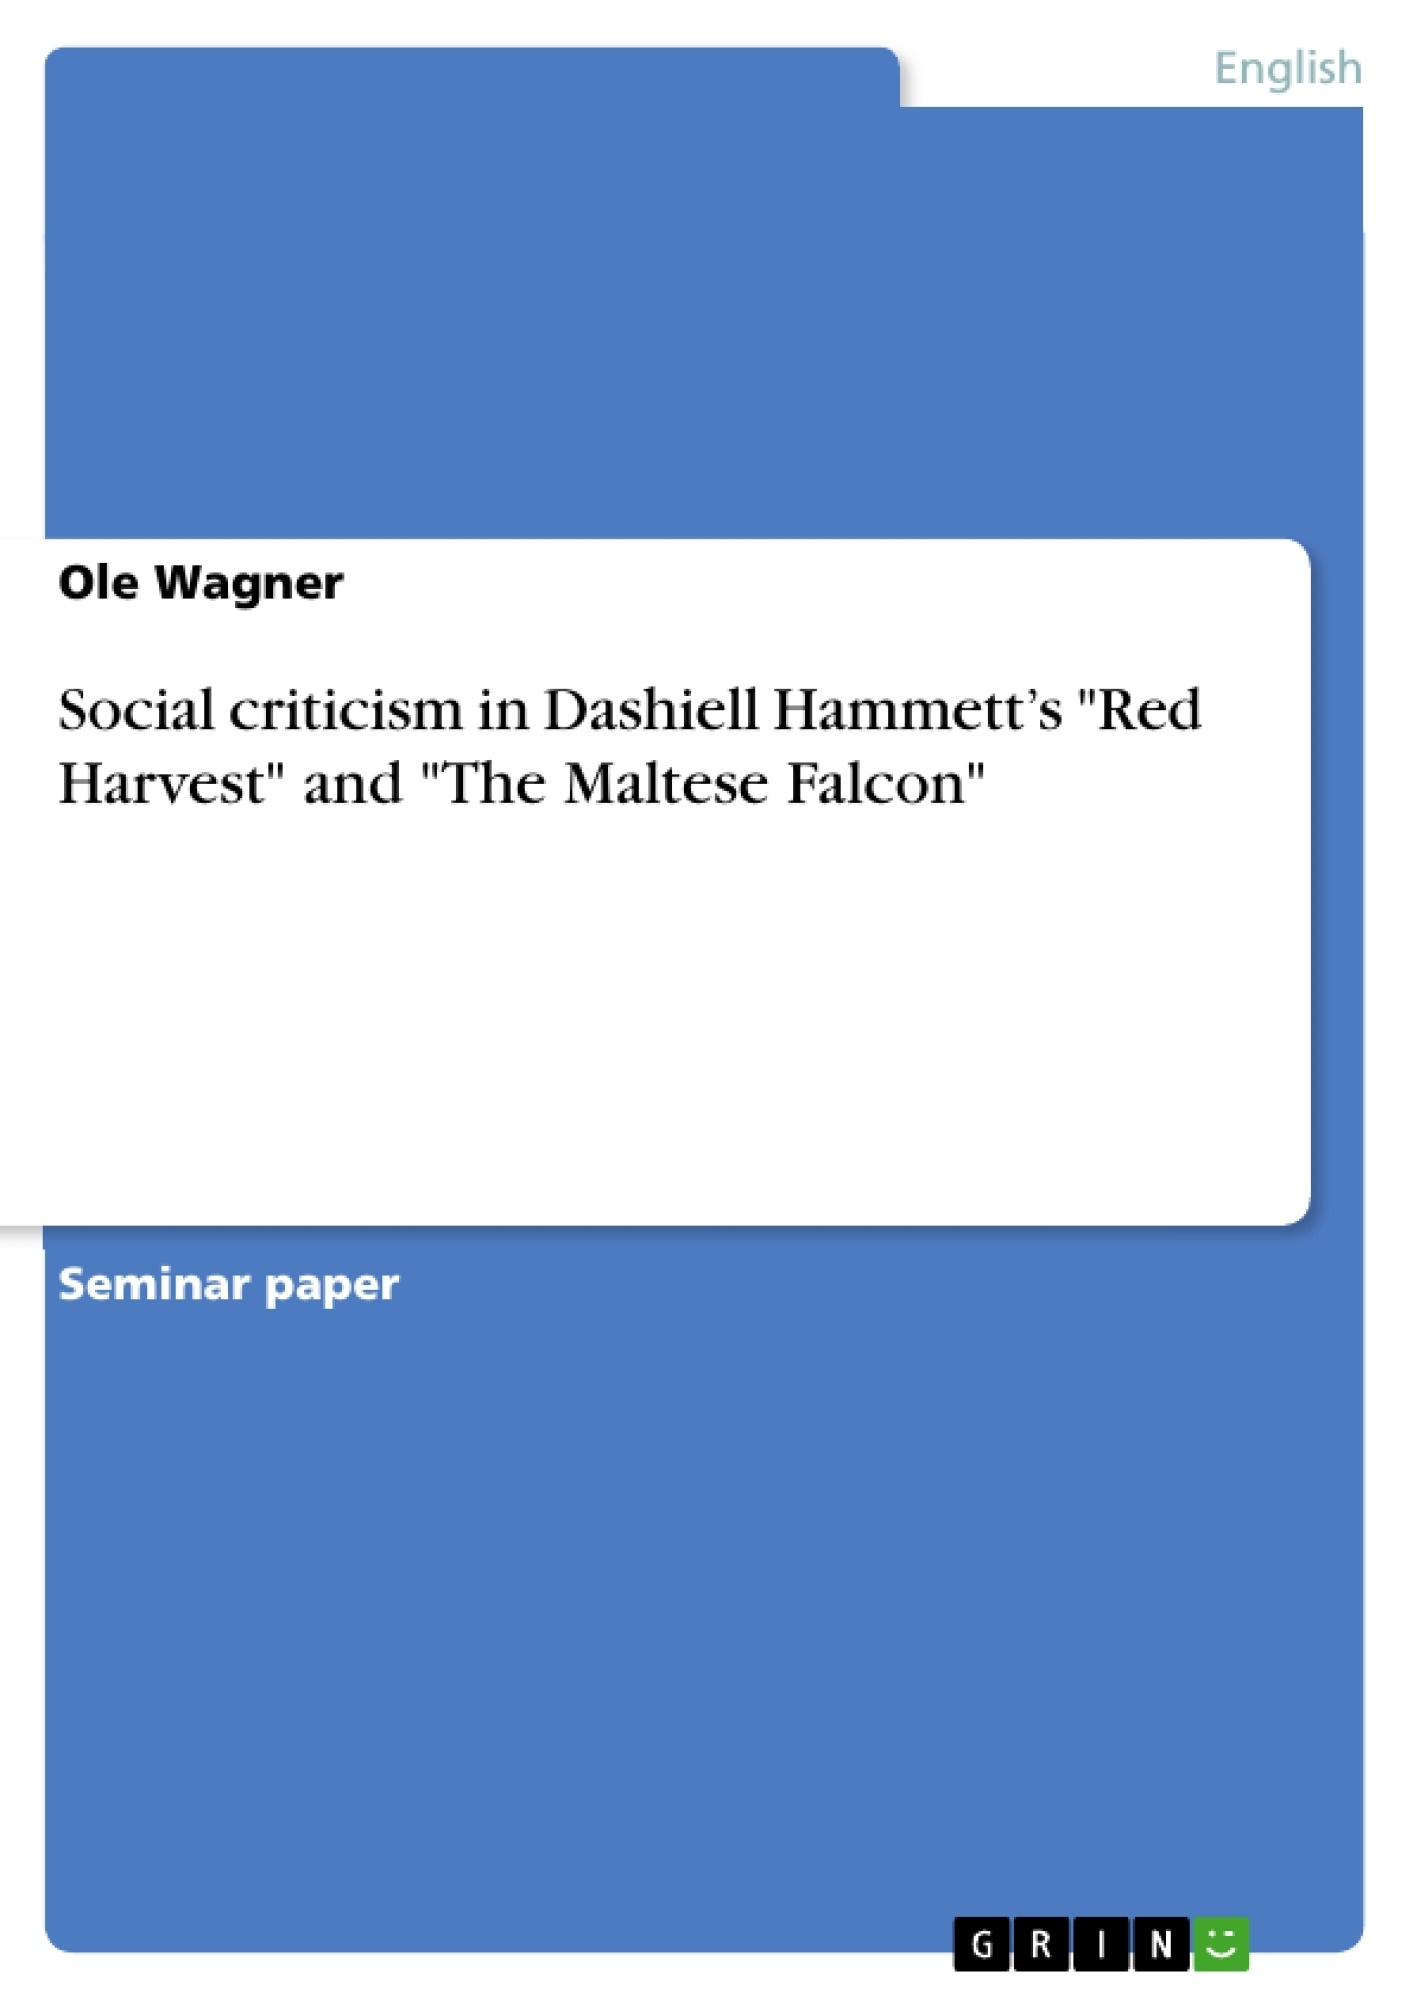 """Title: Social criticism in Dashiell Hammett's """"Red Harvest"""" and """"The Maltese Falcon"""""""